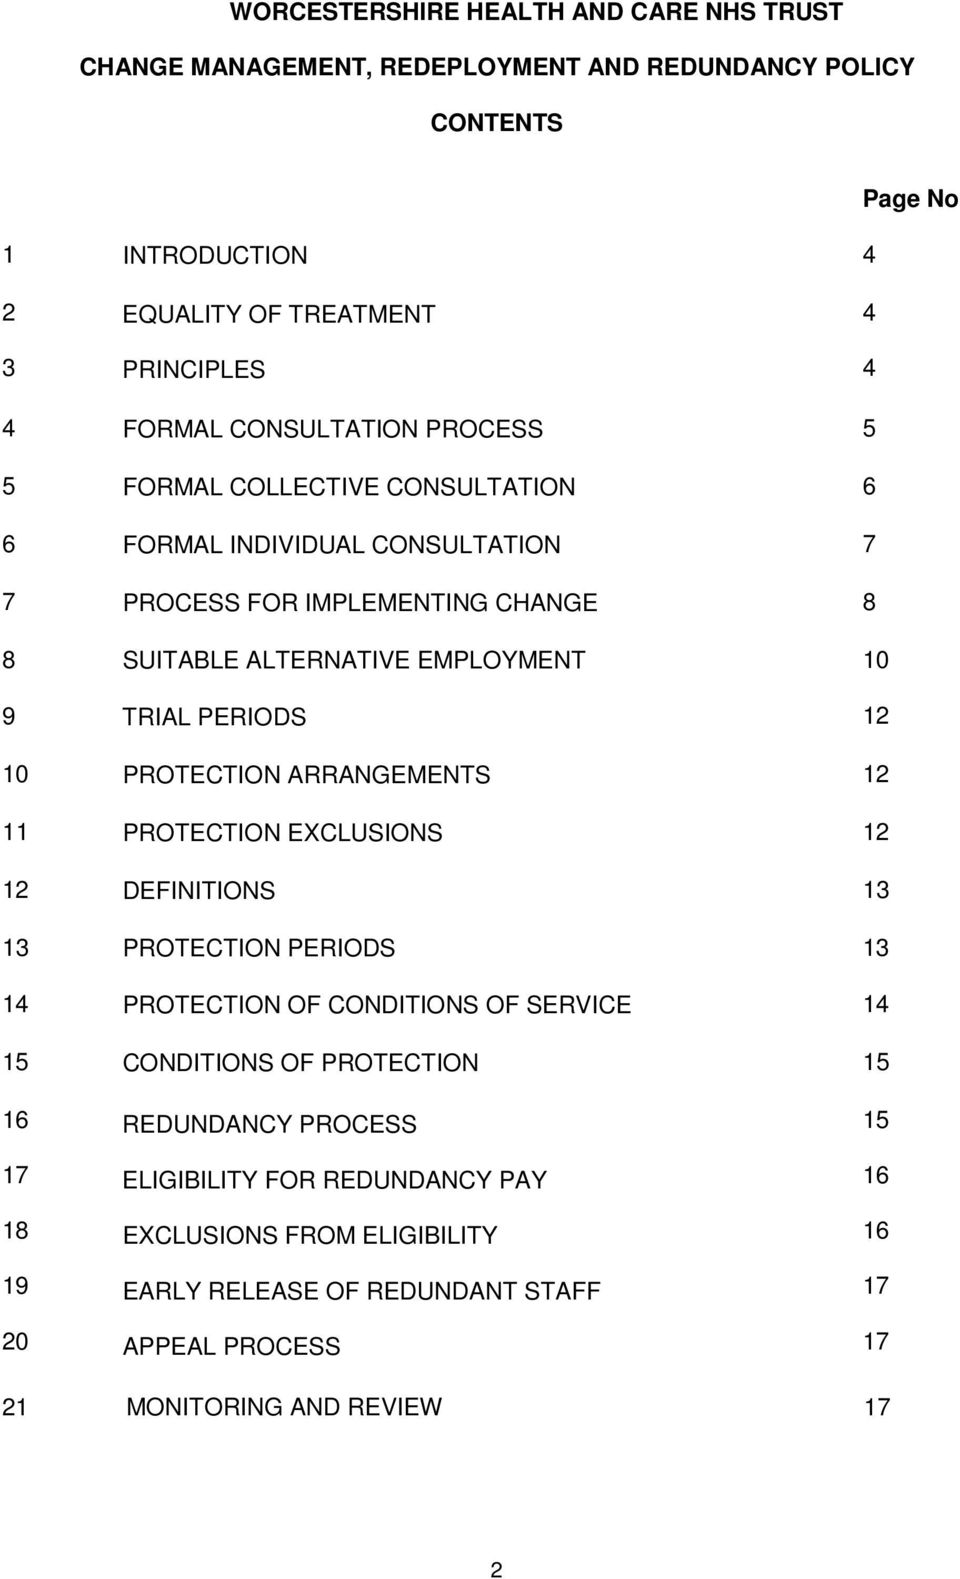 PERIODS 12 10 PROTECTION ARRANGEMENTS 12 11 PROTECTION EXCLUSIONS 12 12 DEFINITIONS 13 13 PROTECTION PERIODS 13 14 PROTECTION OF CONDITIONS OF SERVICE 14 15 CONDITIONS OF